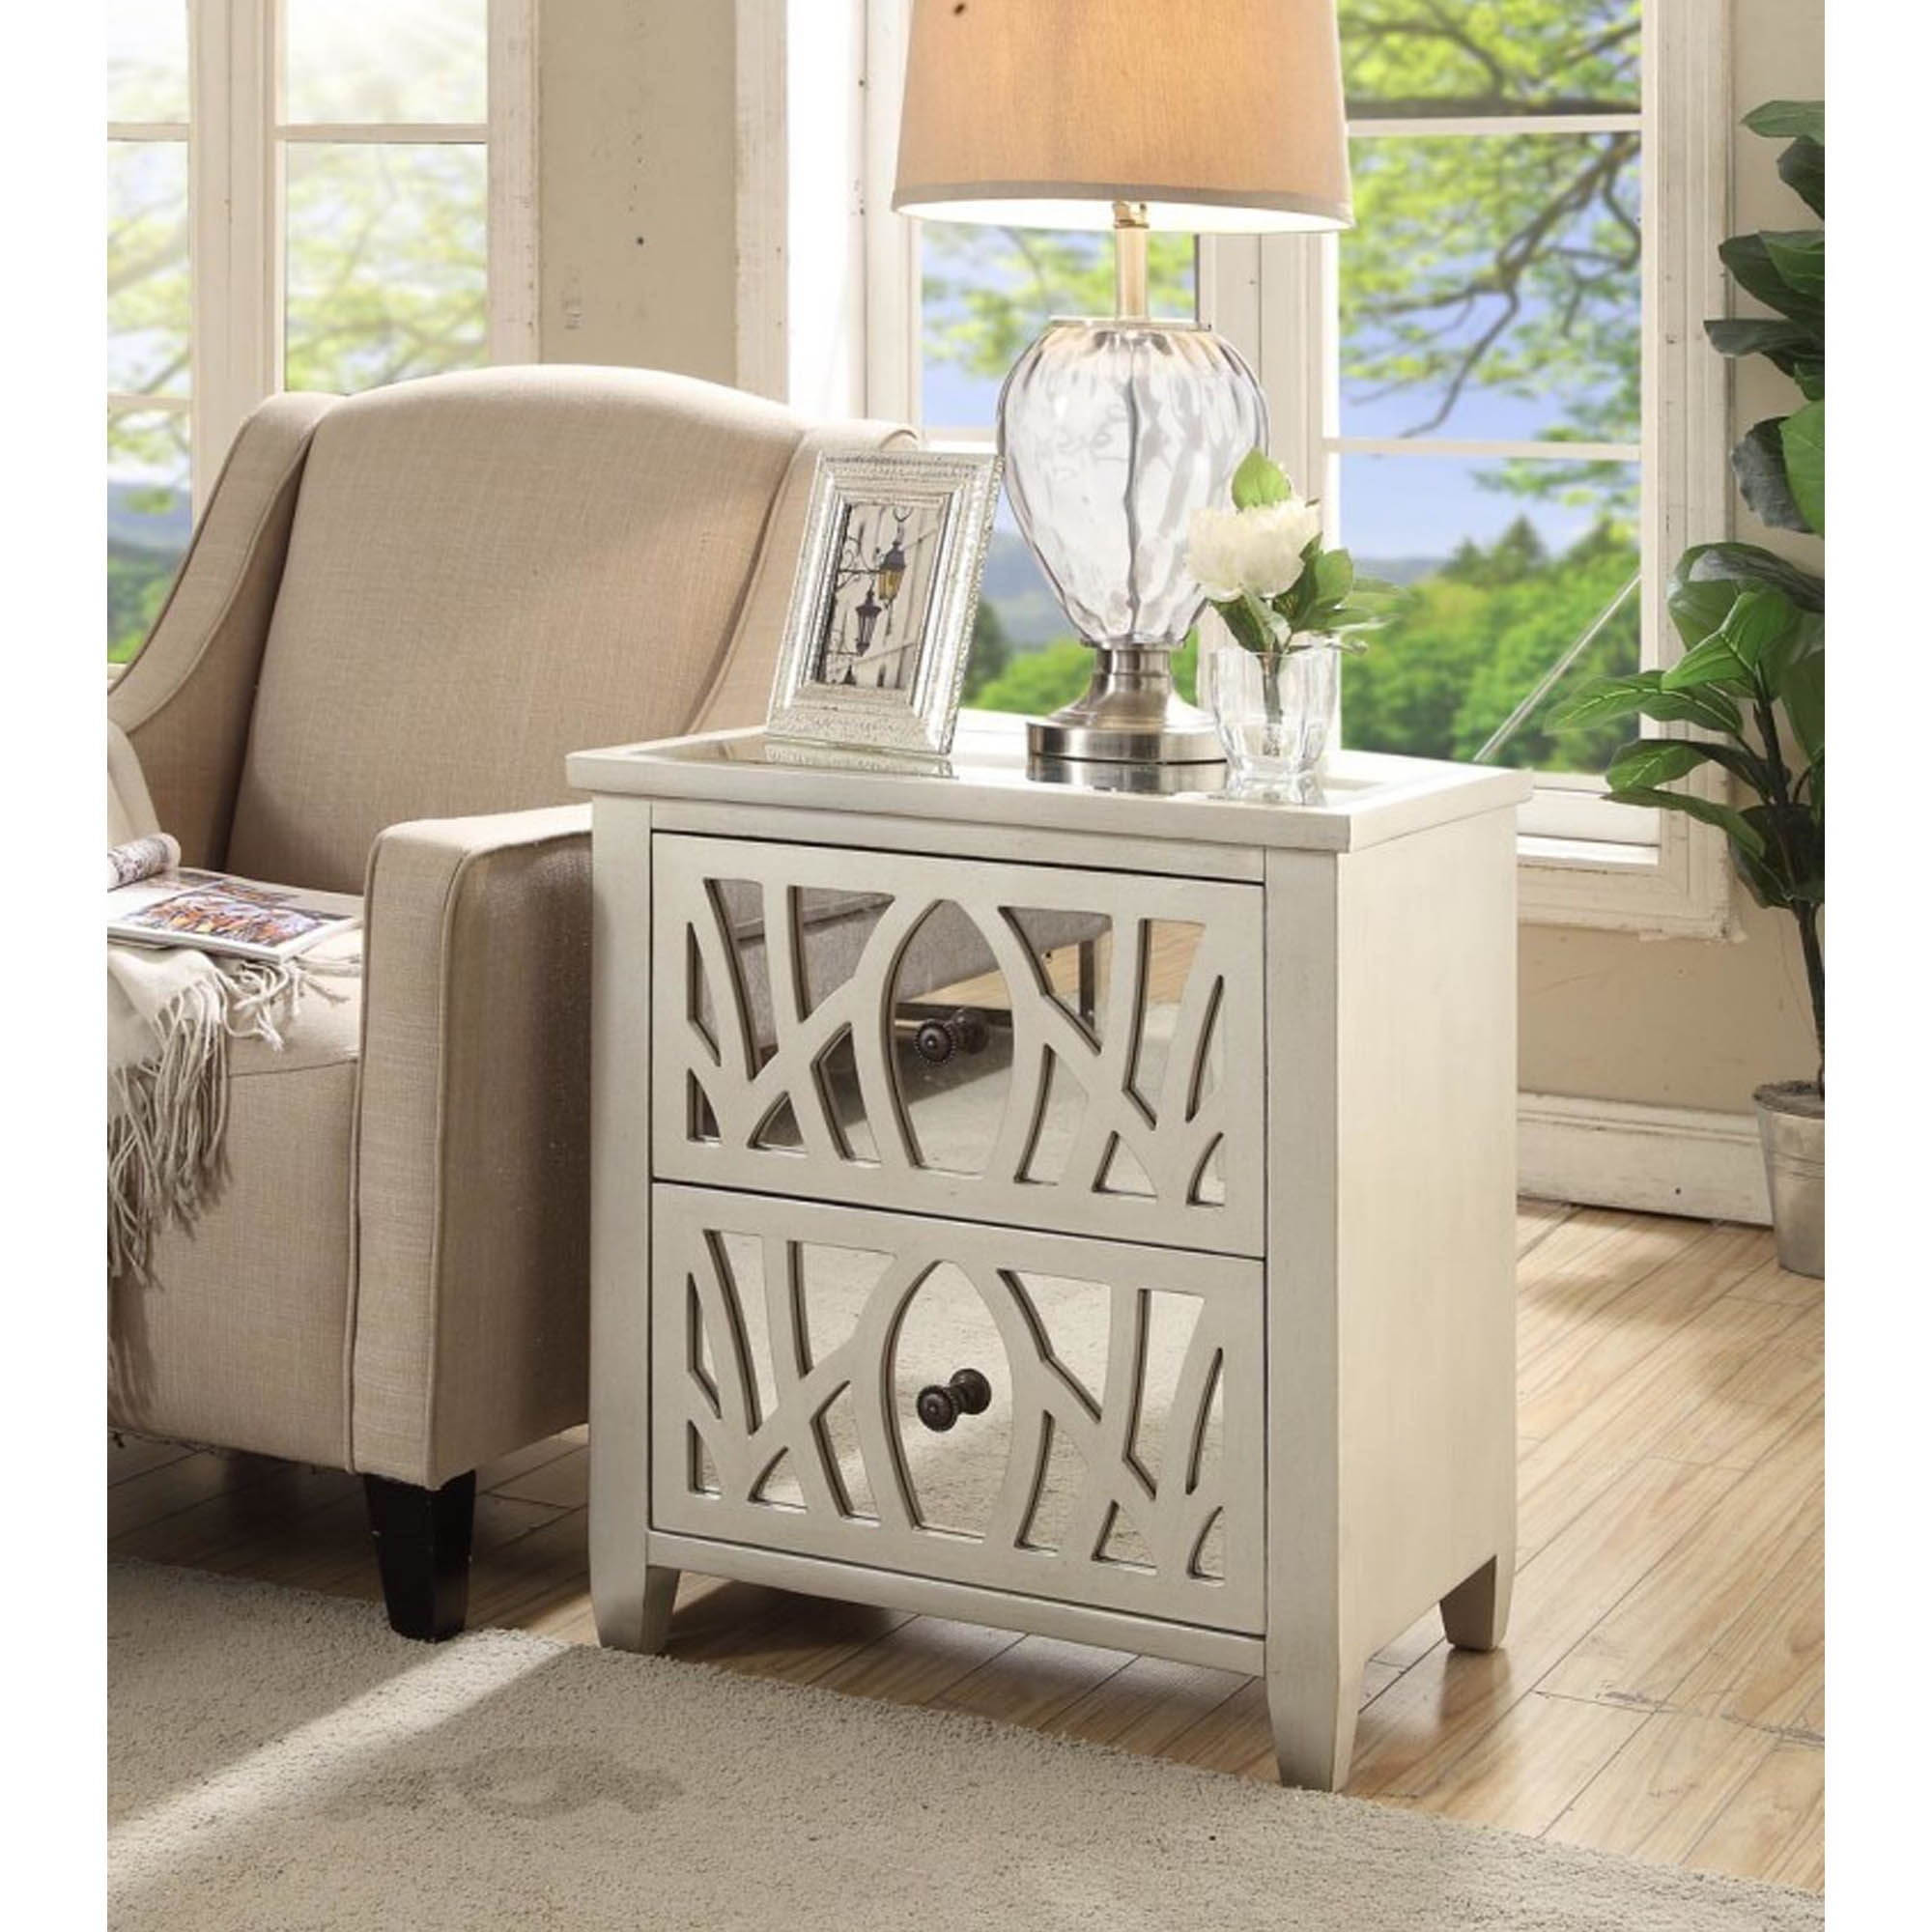 mirrored side table. Gallo Mirrored Side Table R